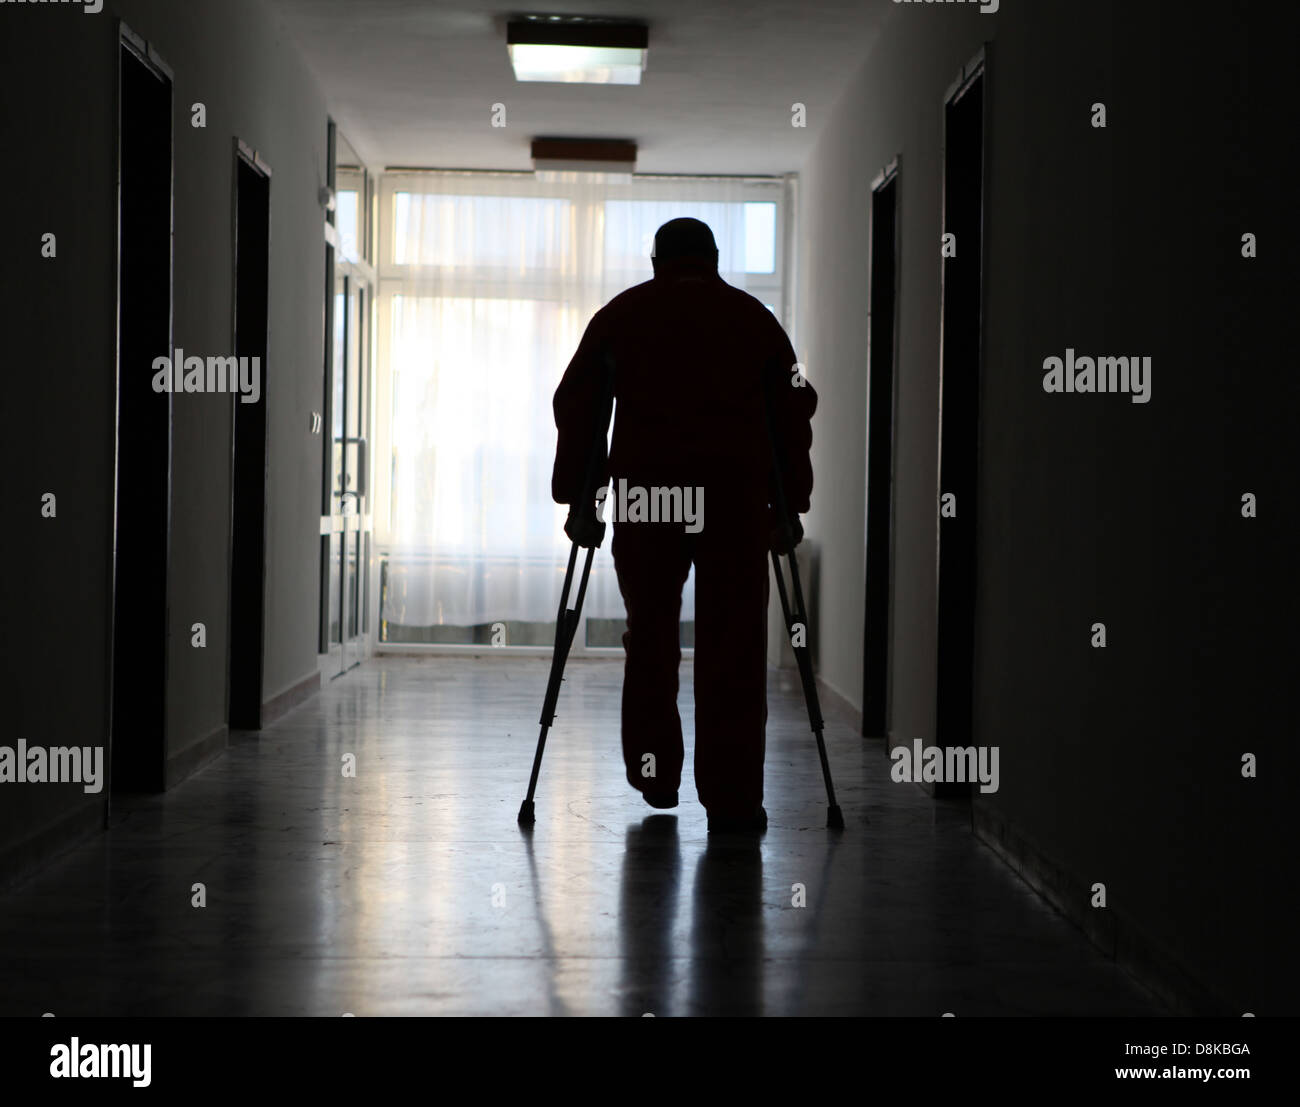 disabled - Stock Image